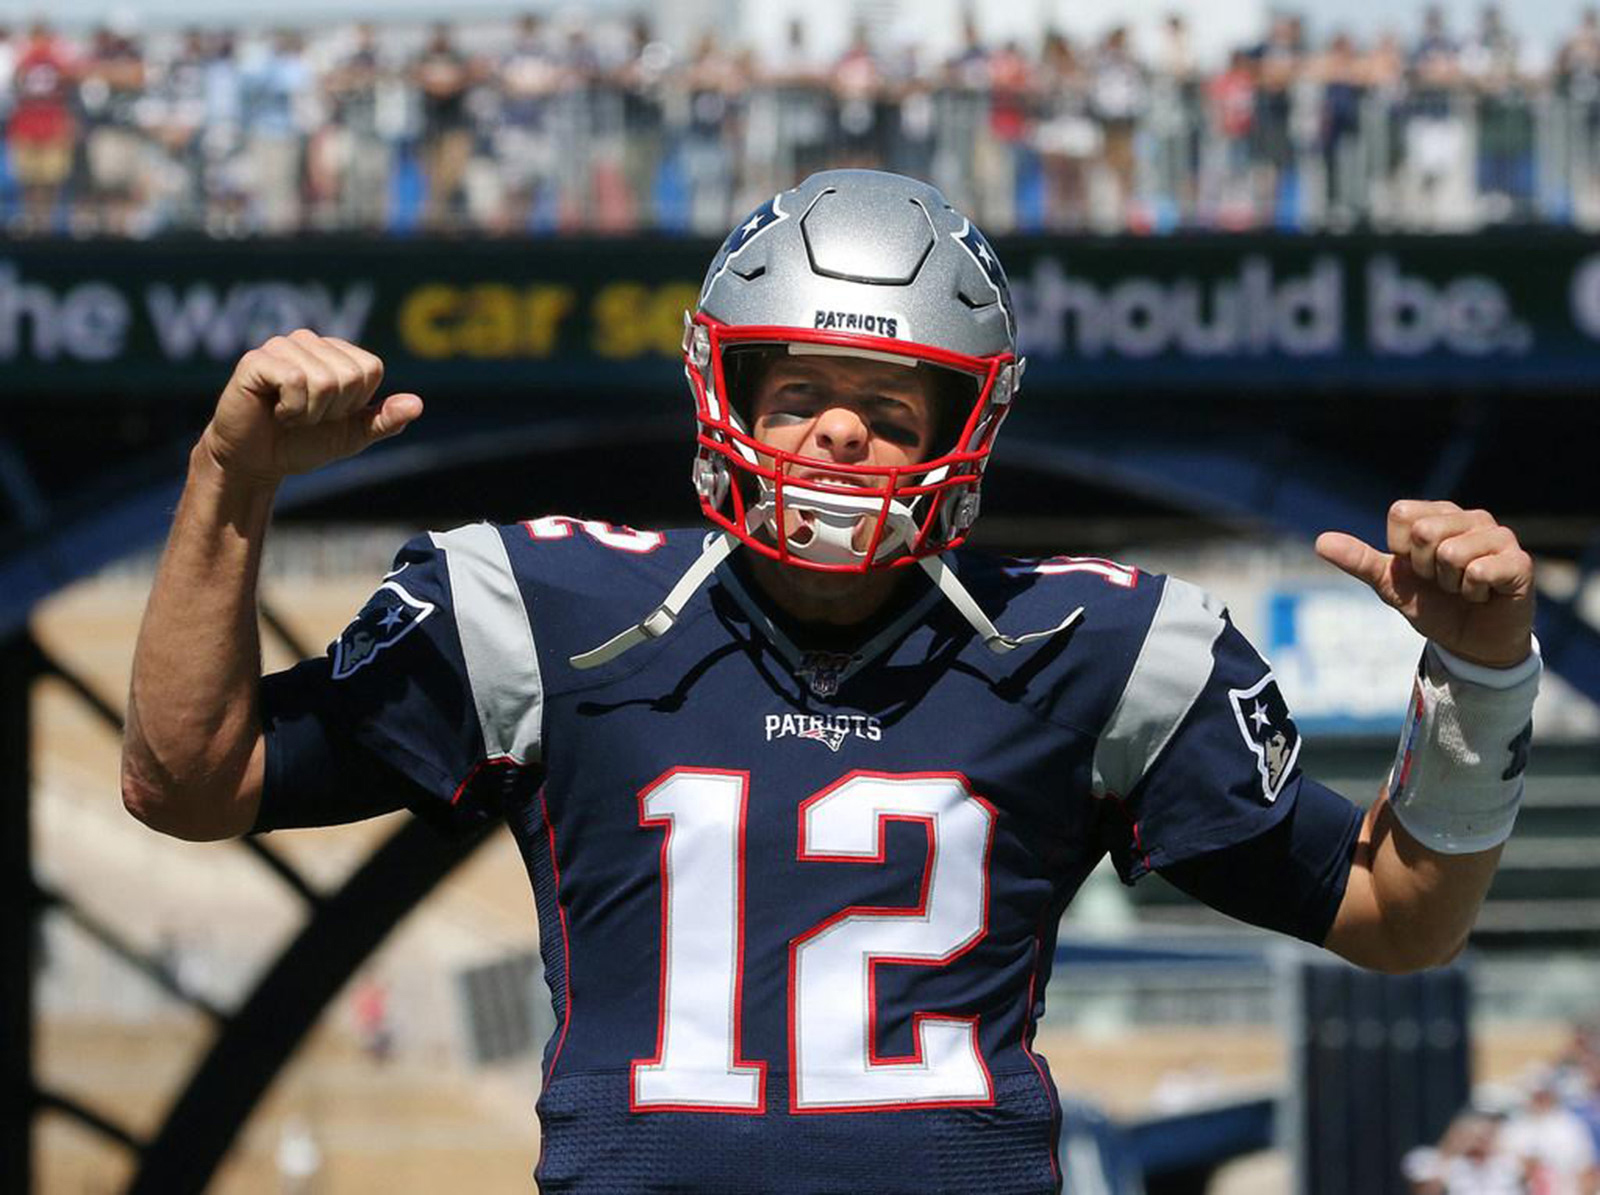 Sep 22, 2019; Foxboro, Massachusetts, USA; New England Patriots quarterback Tom Brady pumps up the crowd about an hour before a game against the New York Jets as he starts his warmups at Gillette Stadium. Mandatory Credit: Bob Breidenbach/Providence Journal-USA TODAY NETWORK